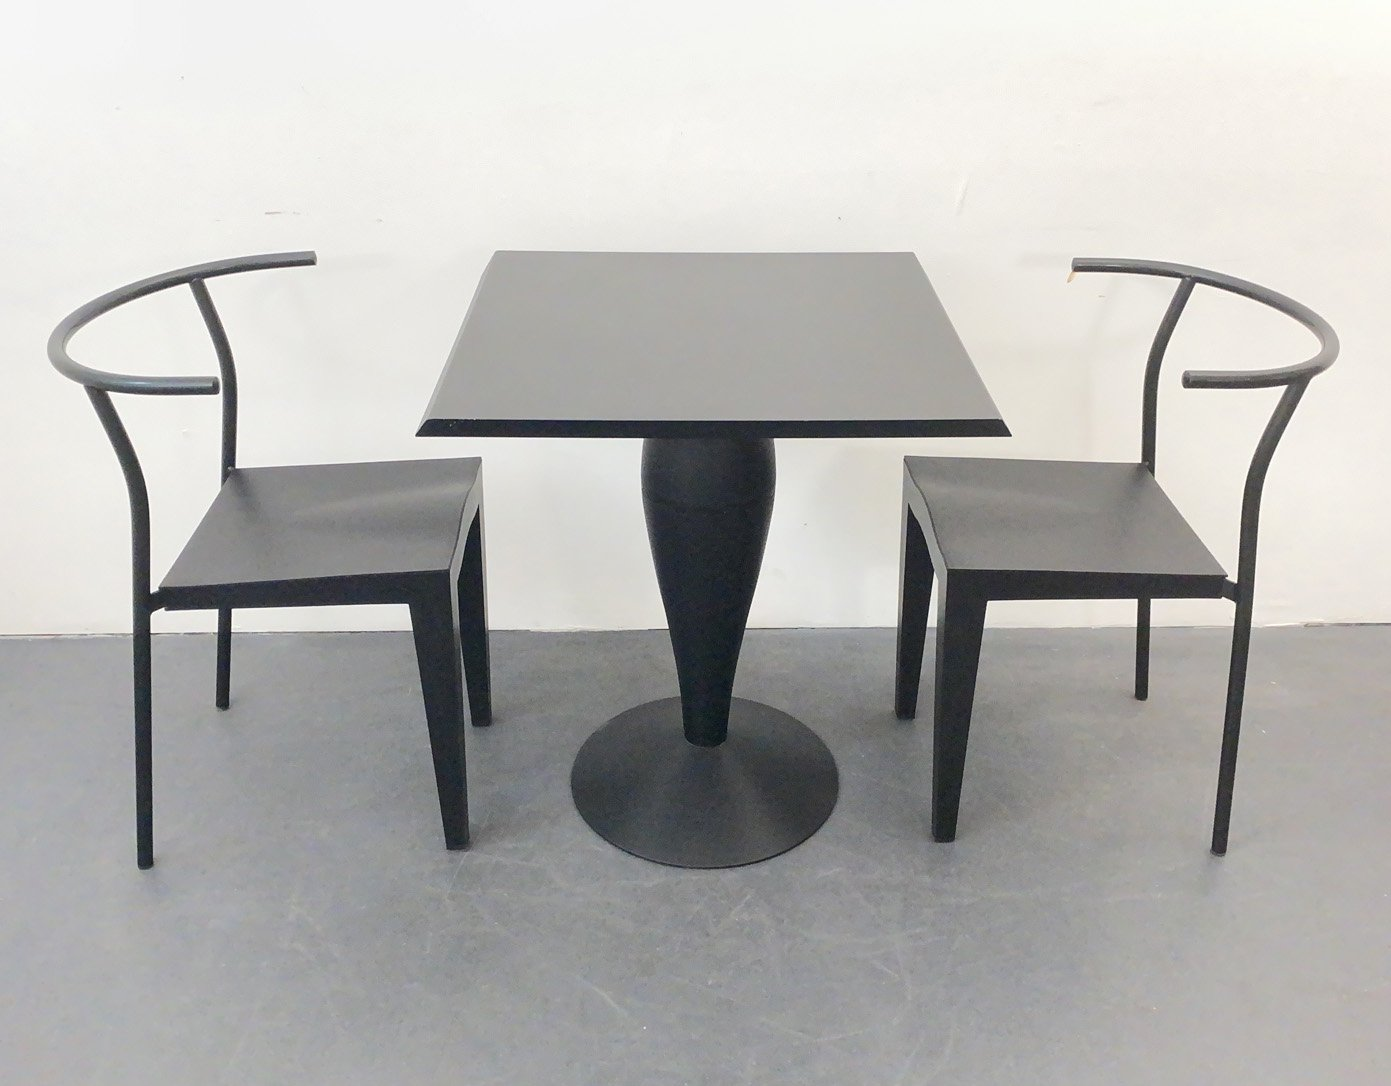 2 Chairs Table By Philippe Starck For Kartell Italy 1980s 136613